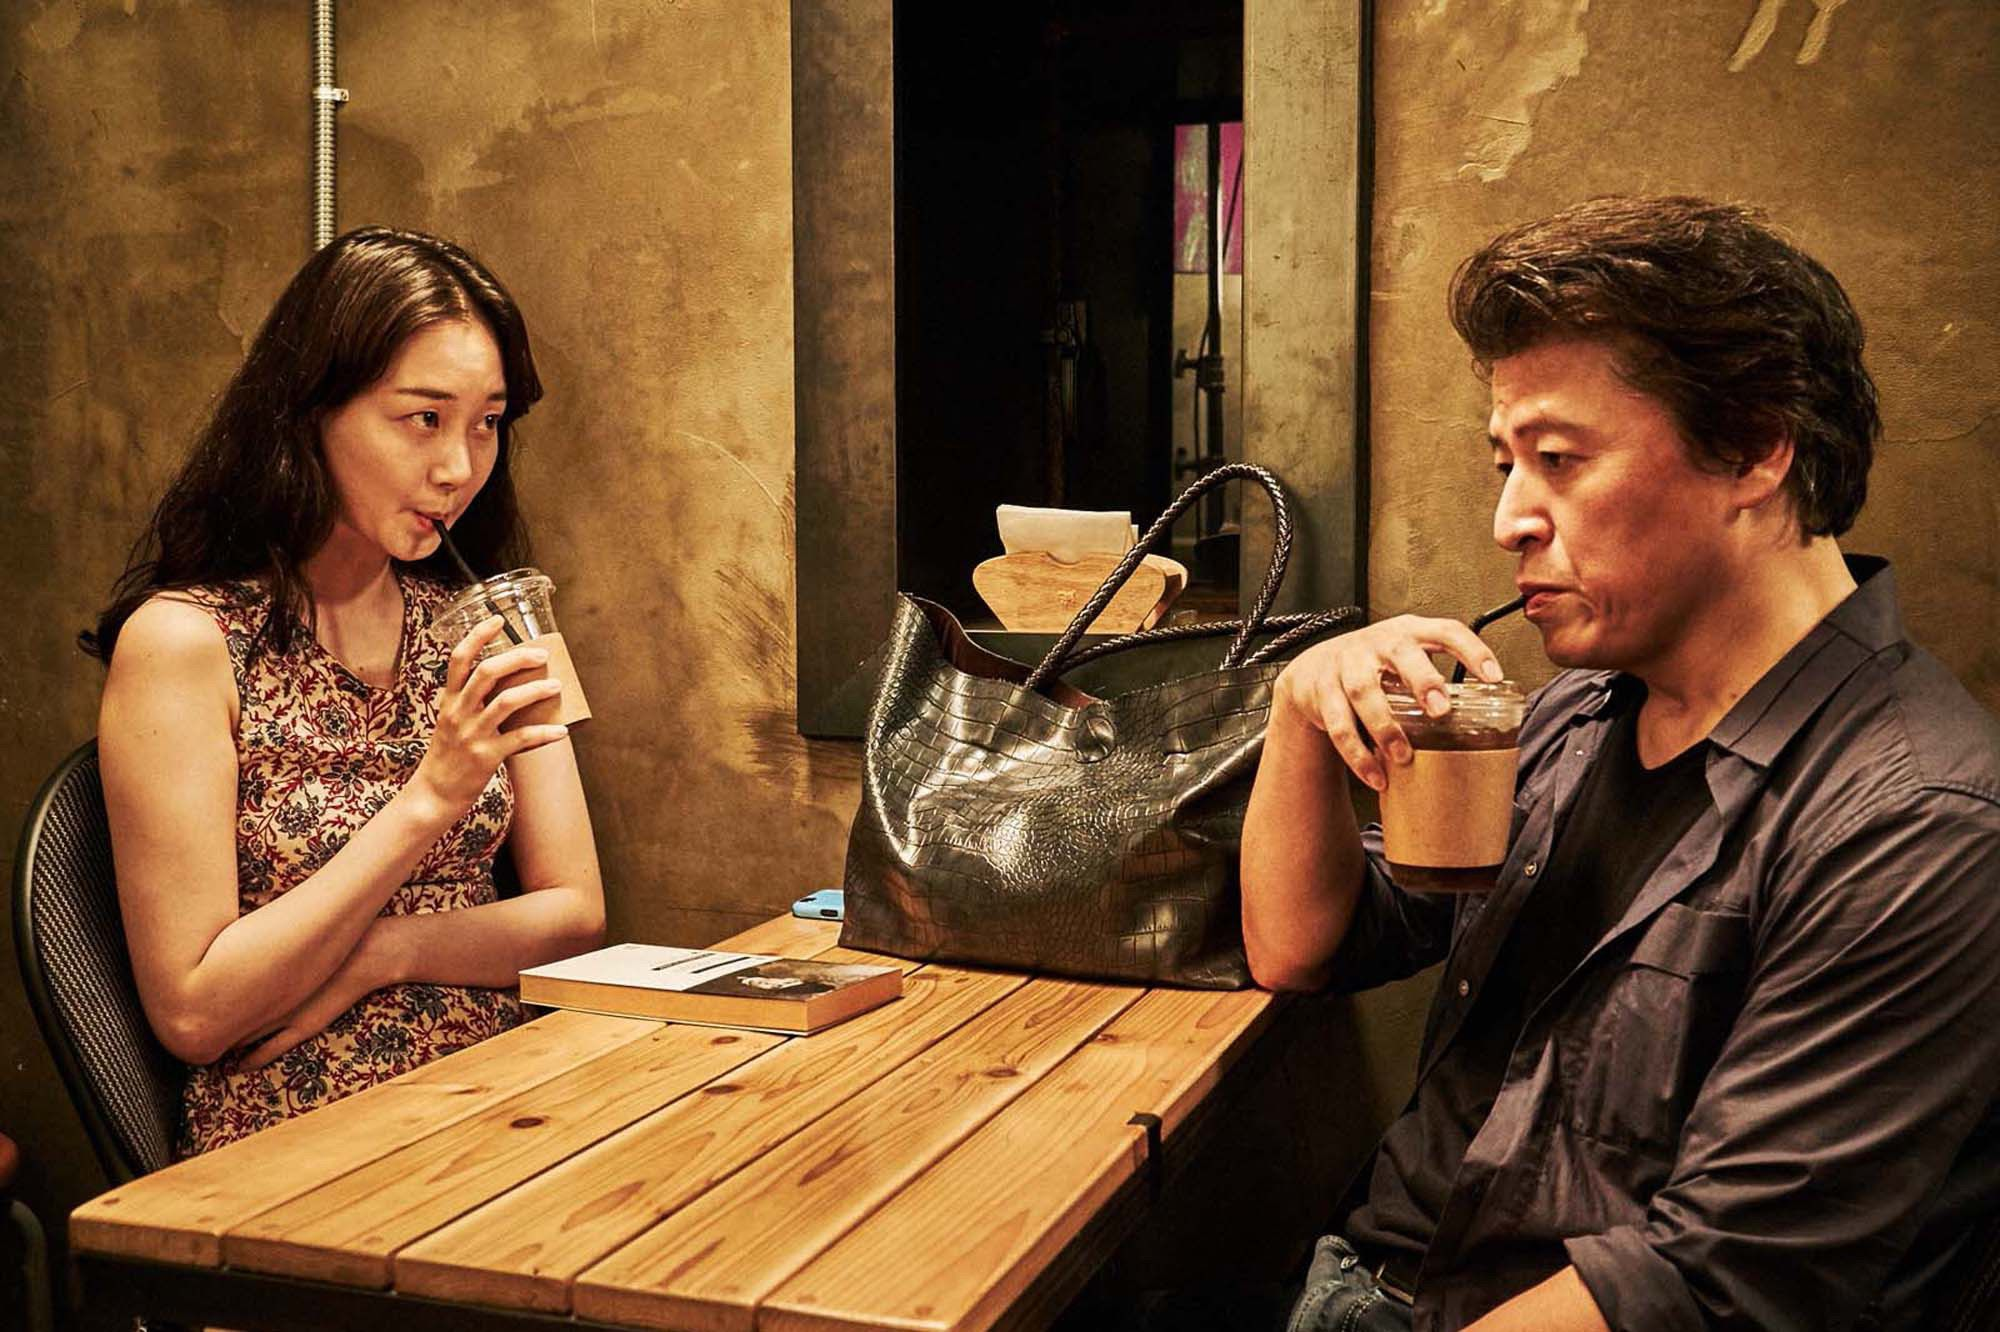 Yourself and Yours, de Hong Sang-Soo